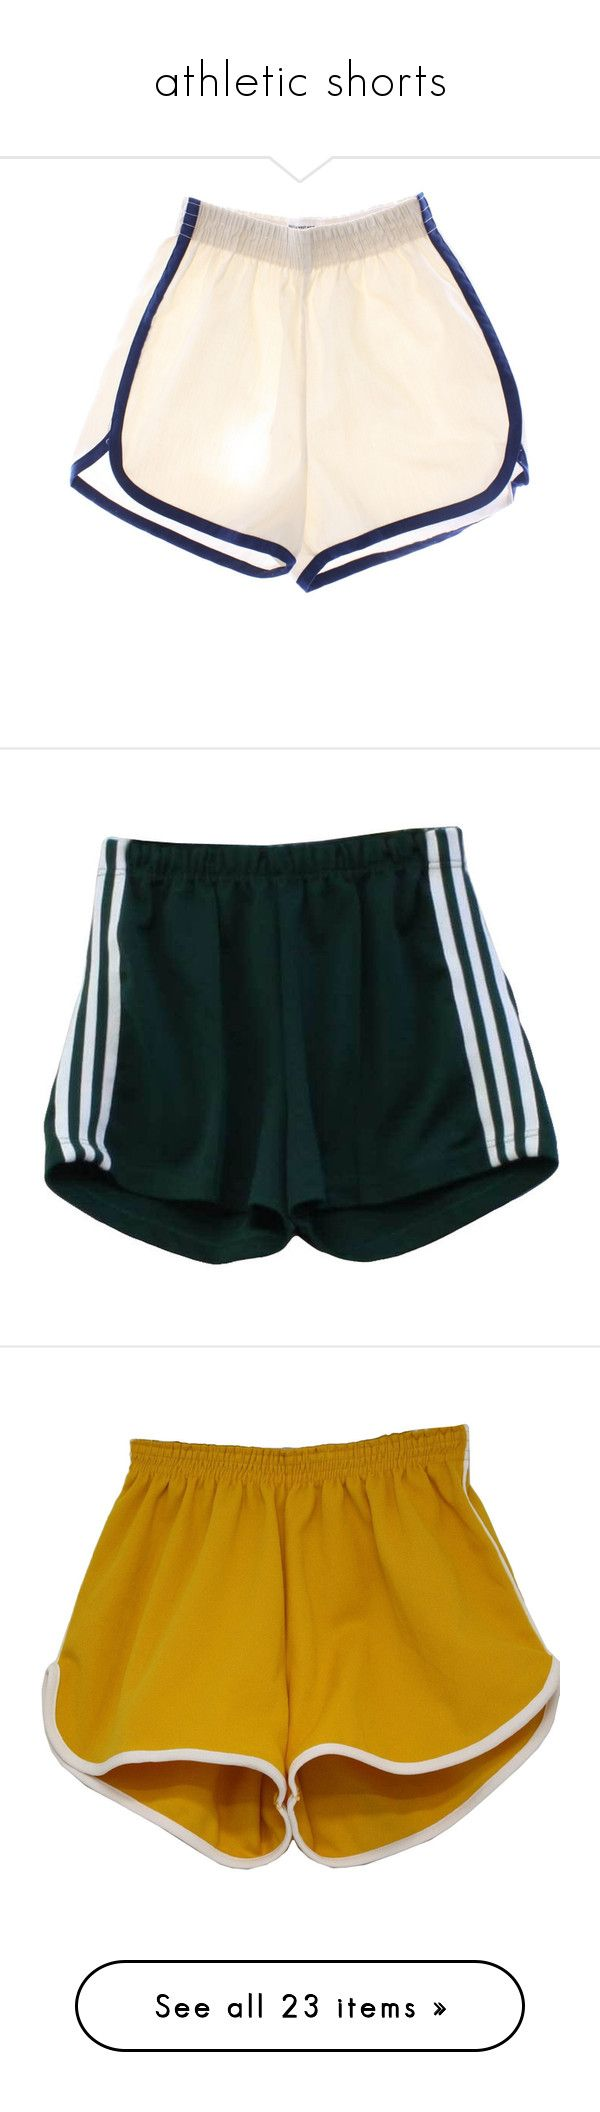 """""""athletic shorts"""" by alypusateri ❤ liked on Polyvore featuring men's fashion, men's clothing, men's activewear, men's activewear shorts, shorts, bottoms, pants, mens activewear, mens activewear shorts and short"""